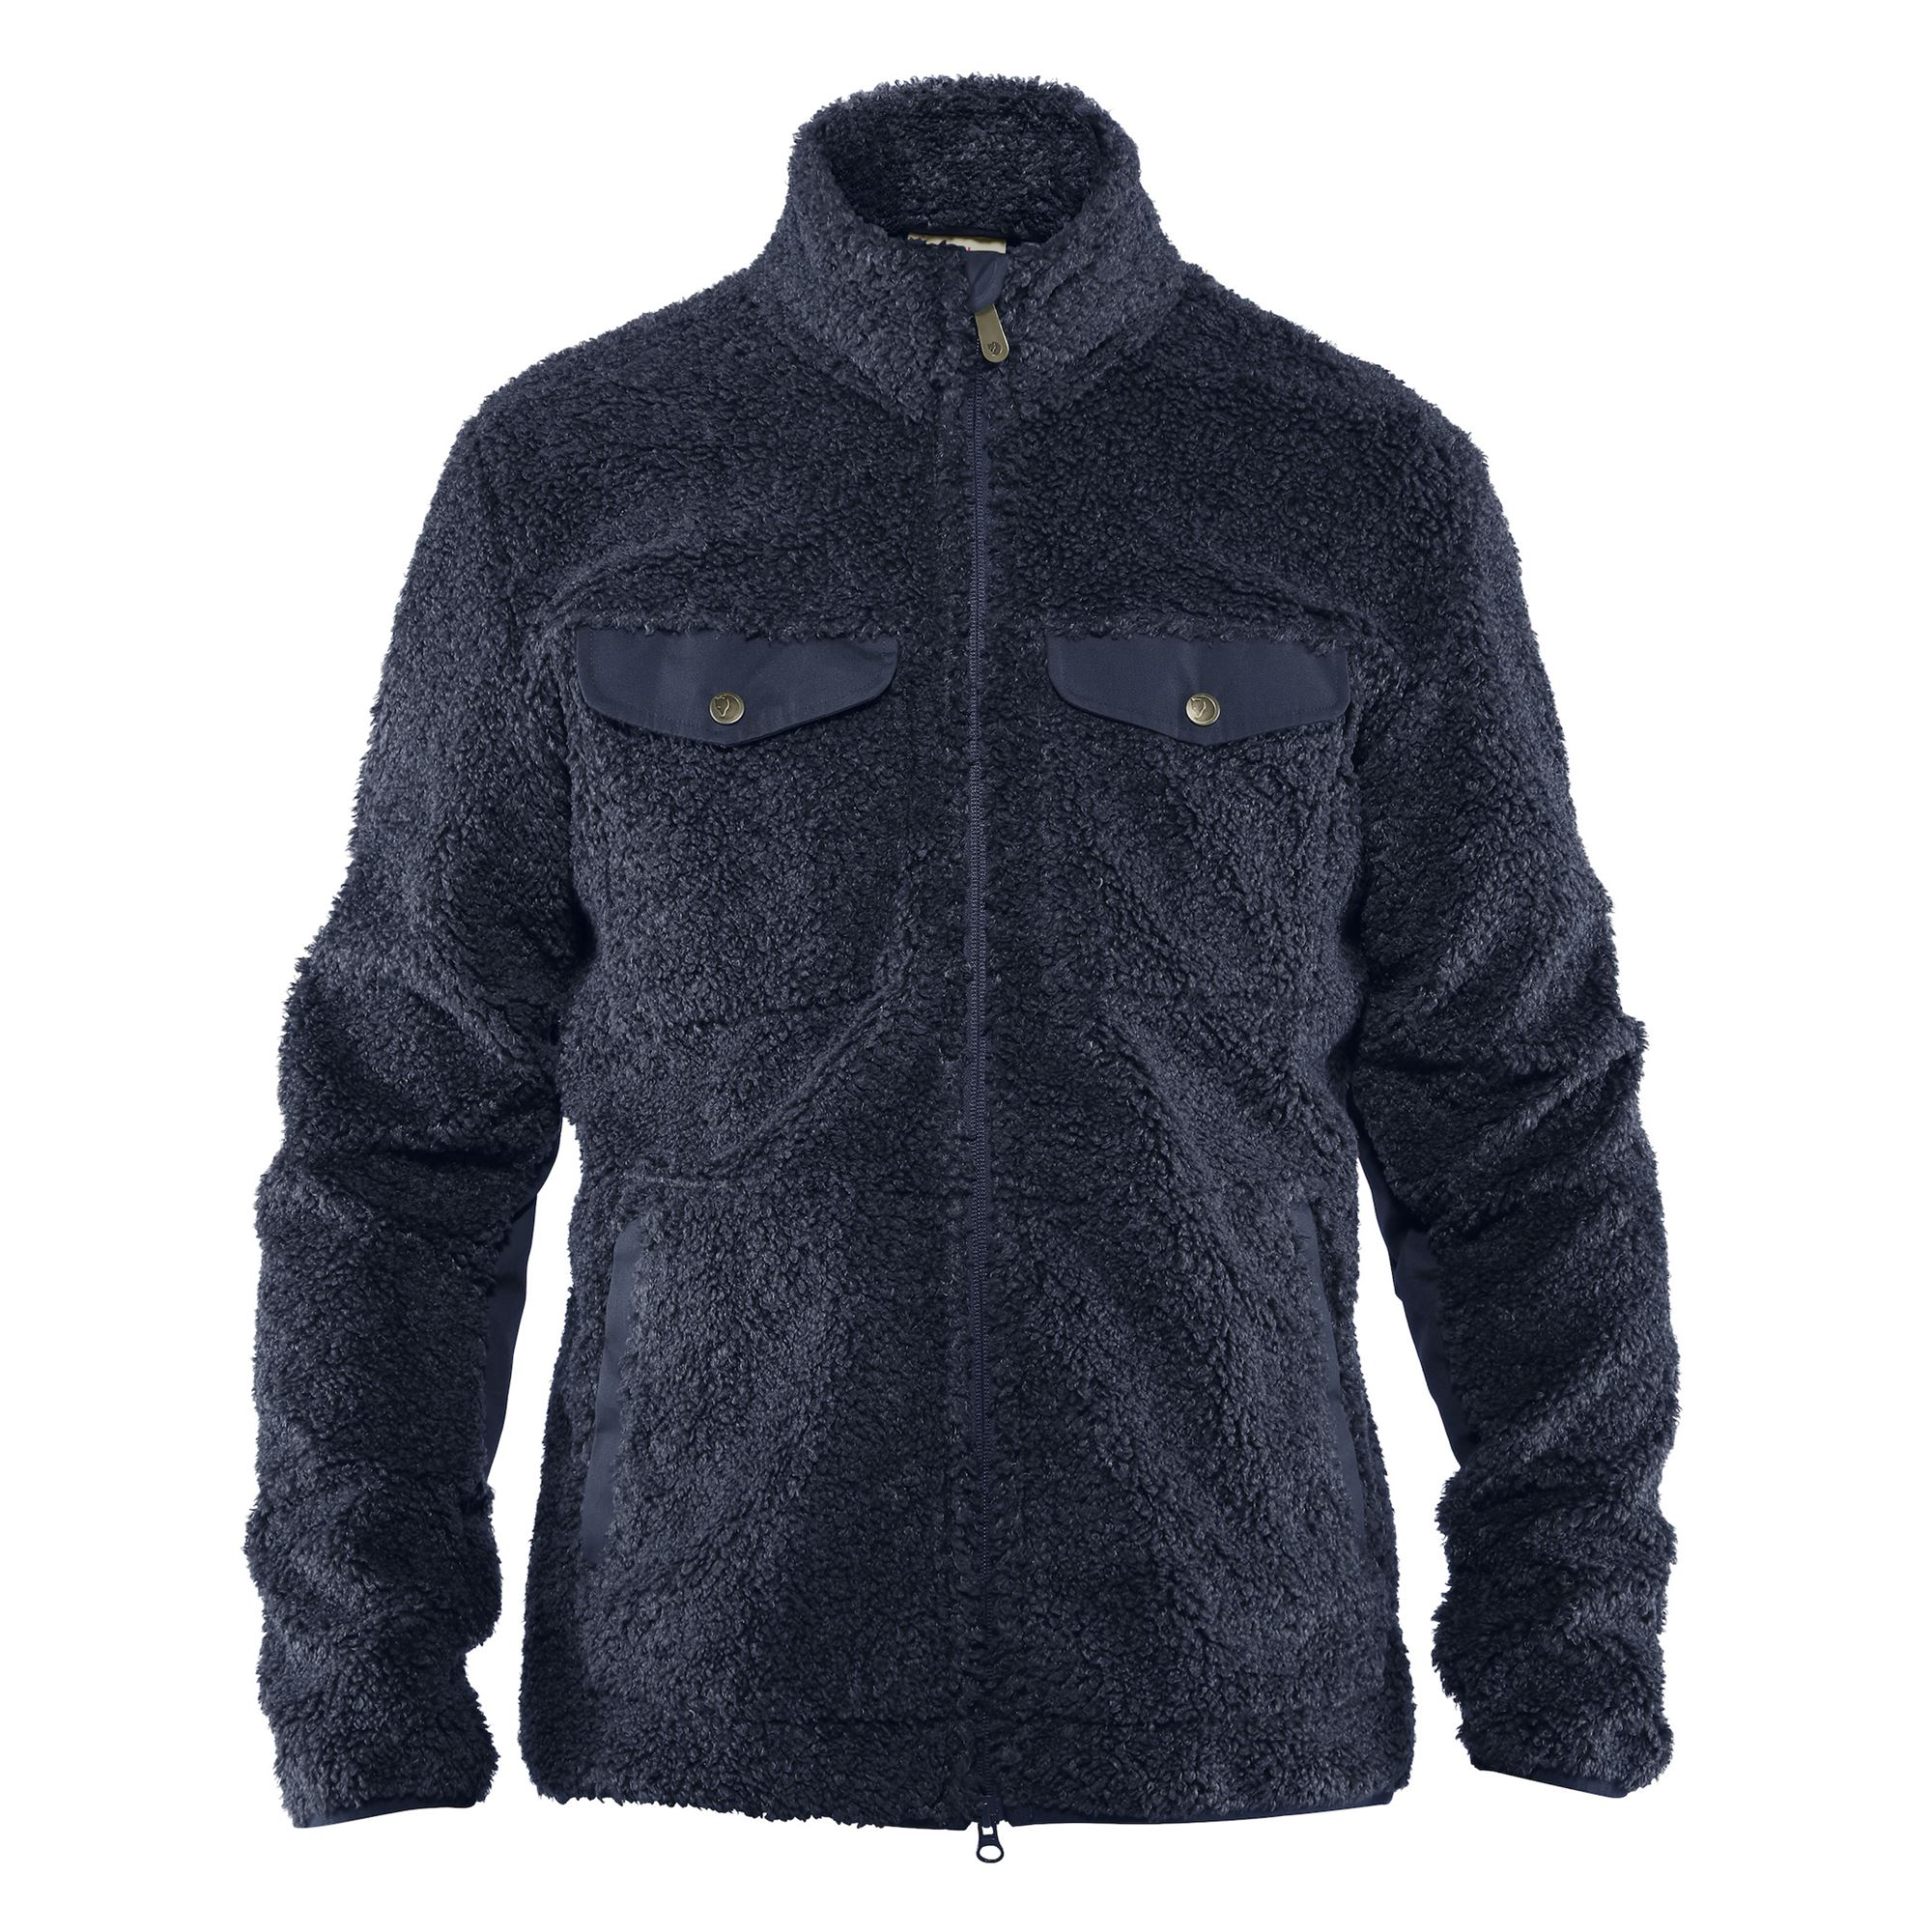 fjallraven, fleece vest, jack